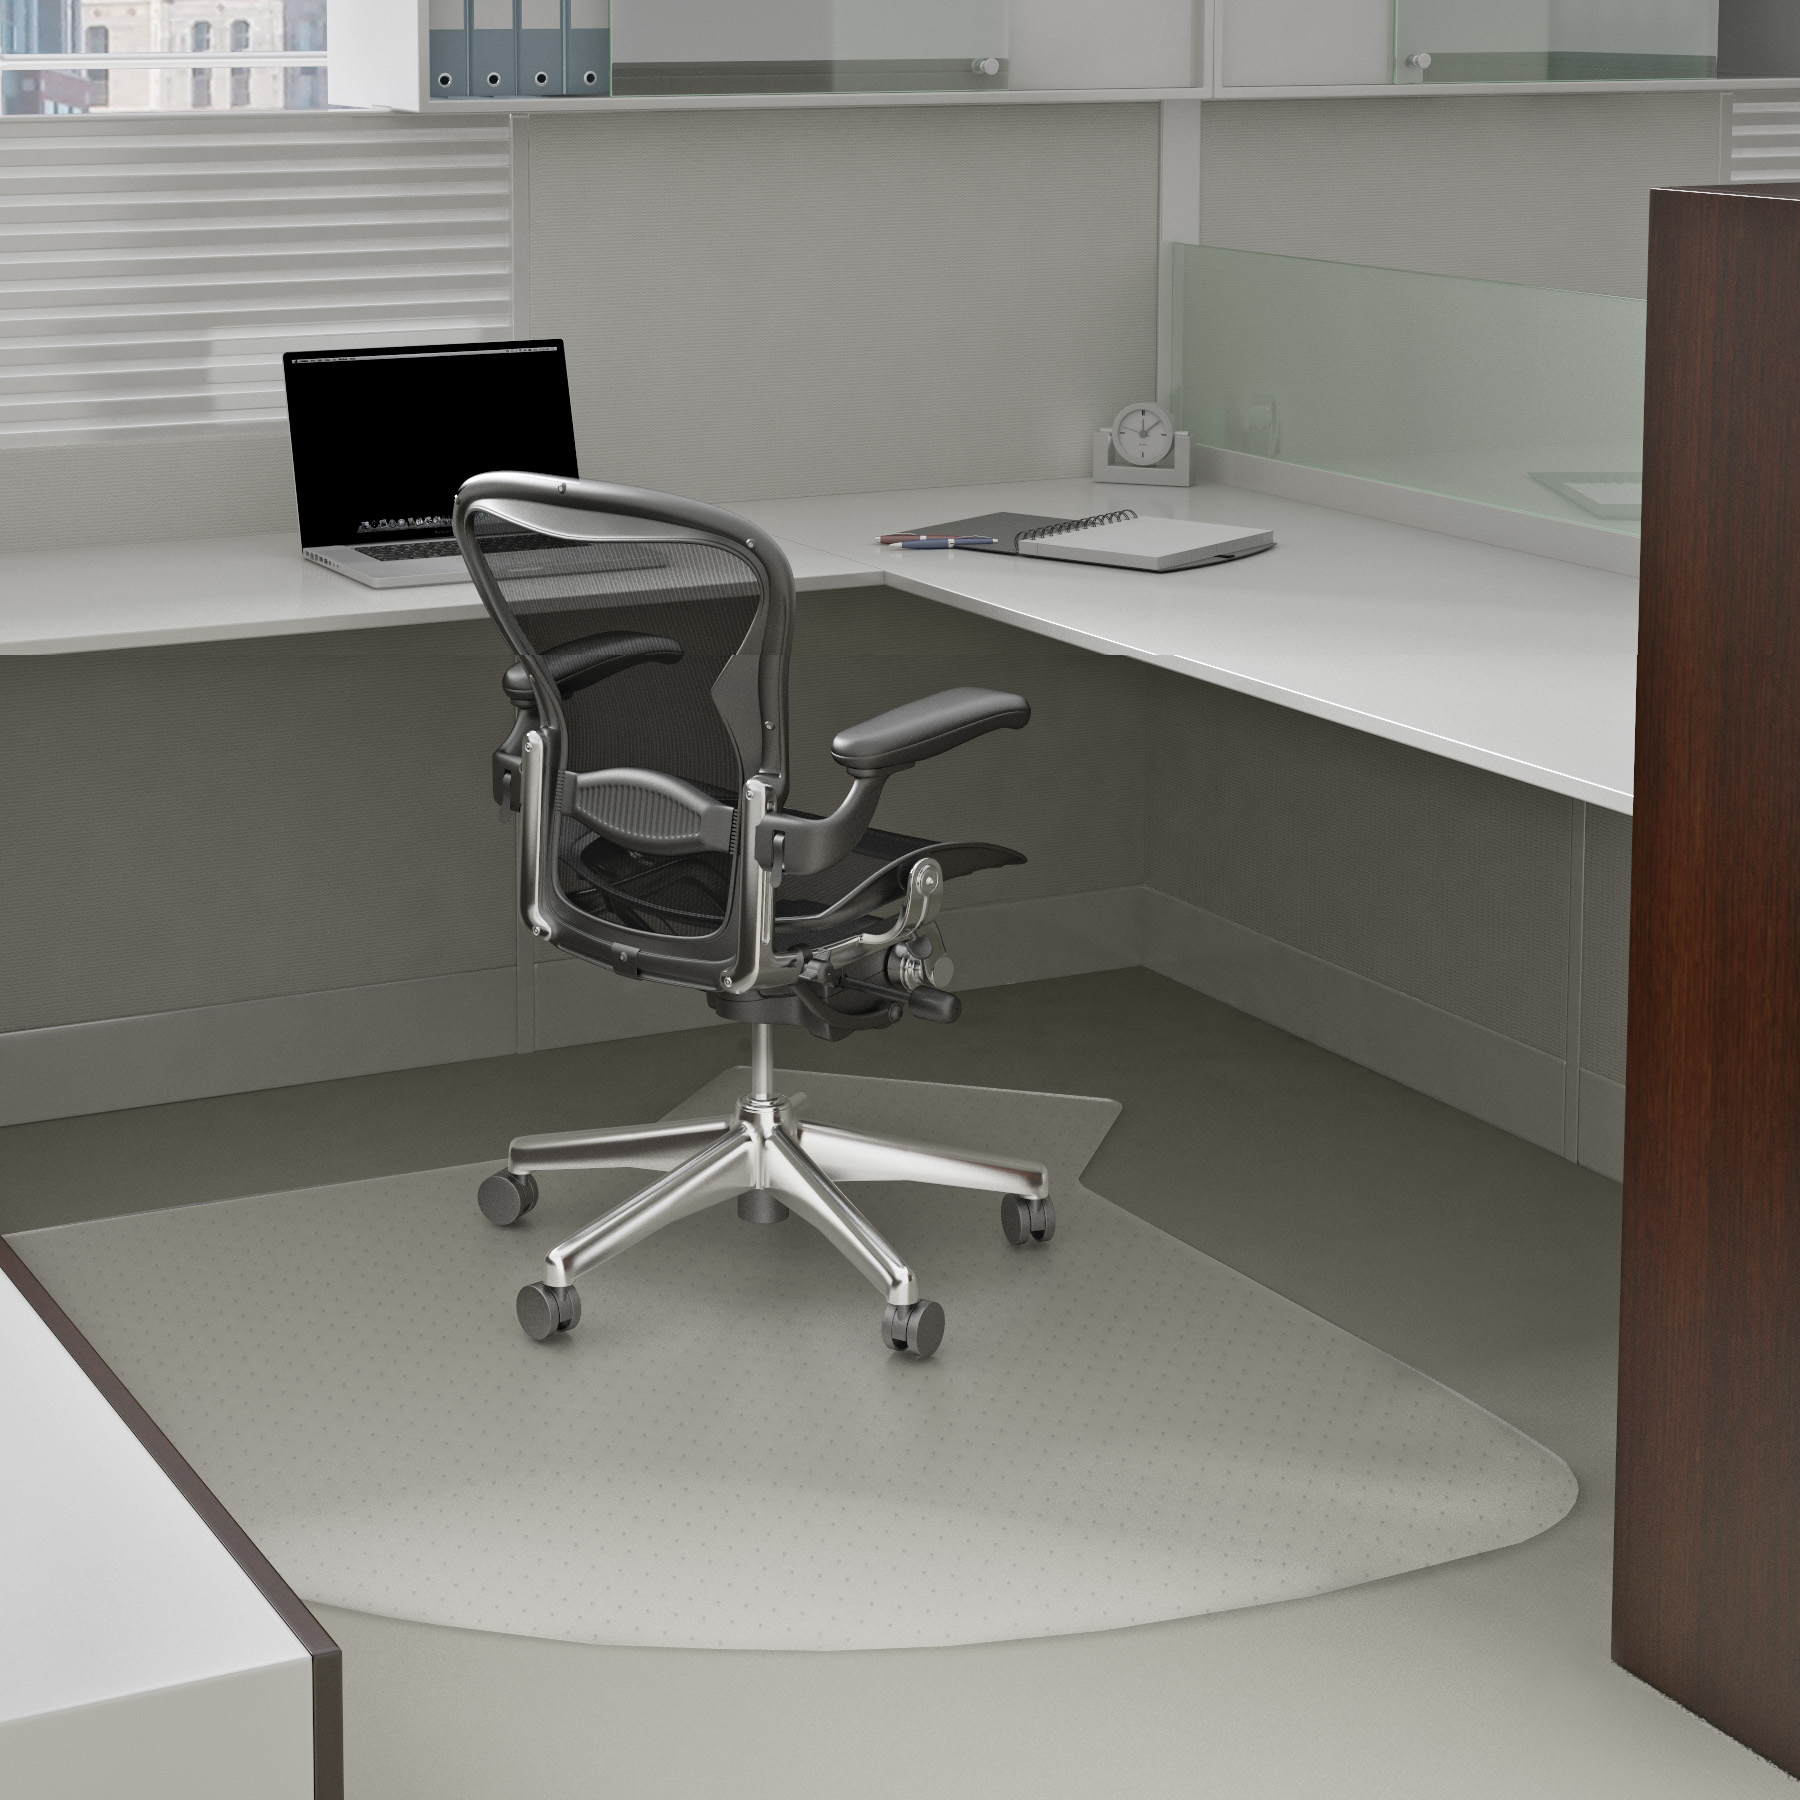 floor mats carpet fascinating chairs chair lovely office for architecture plastic photo